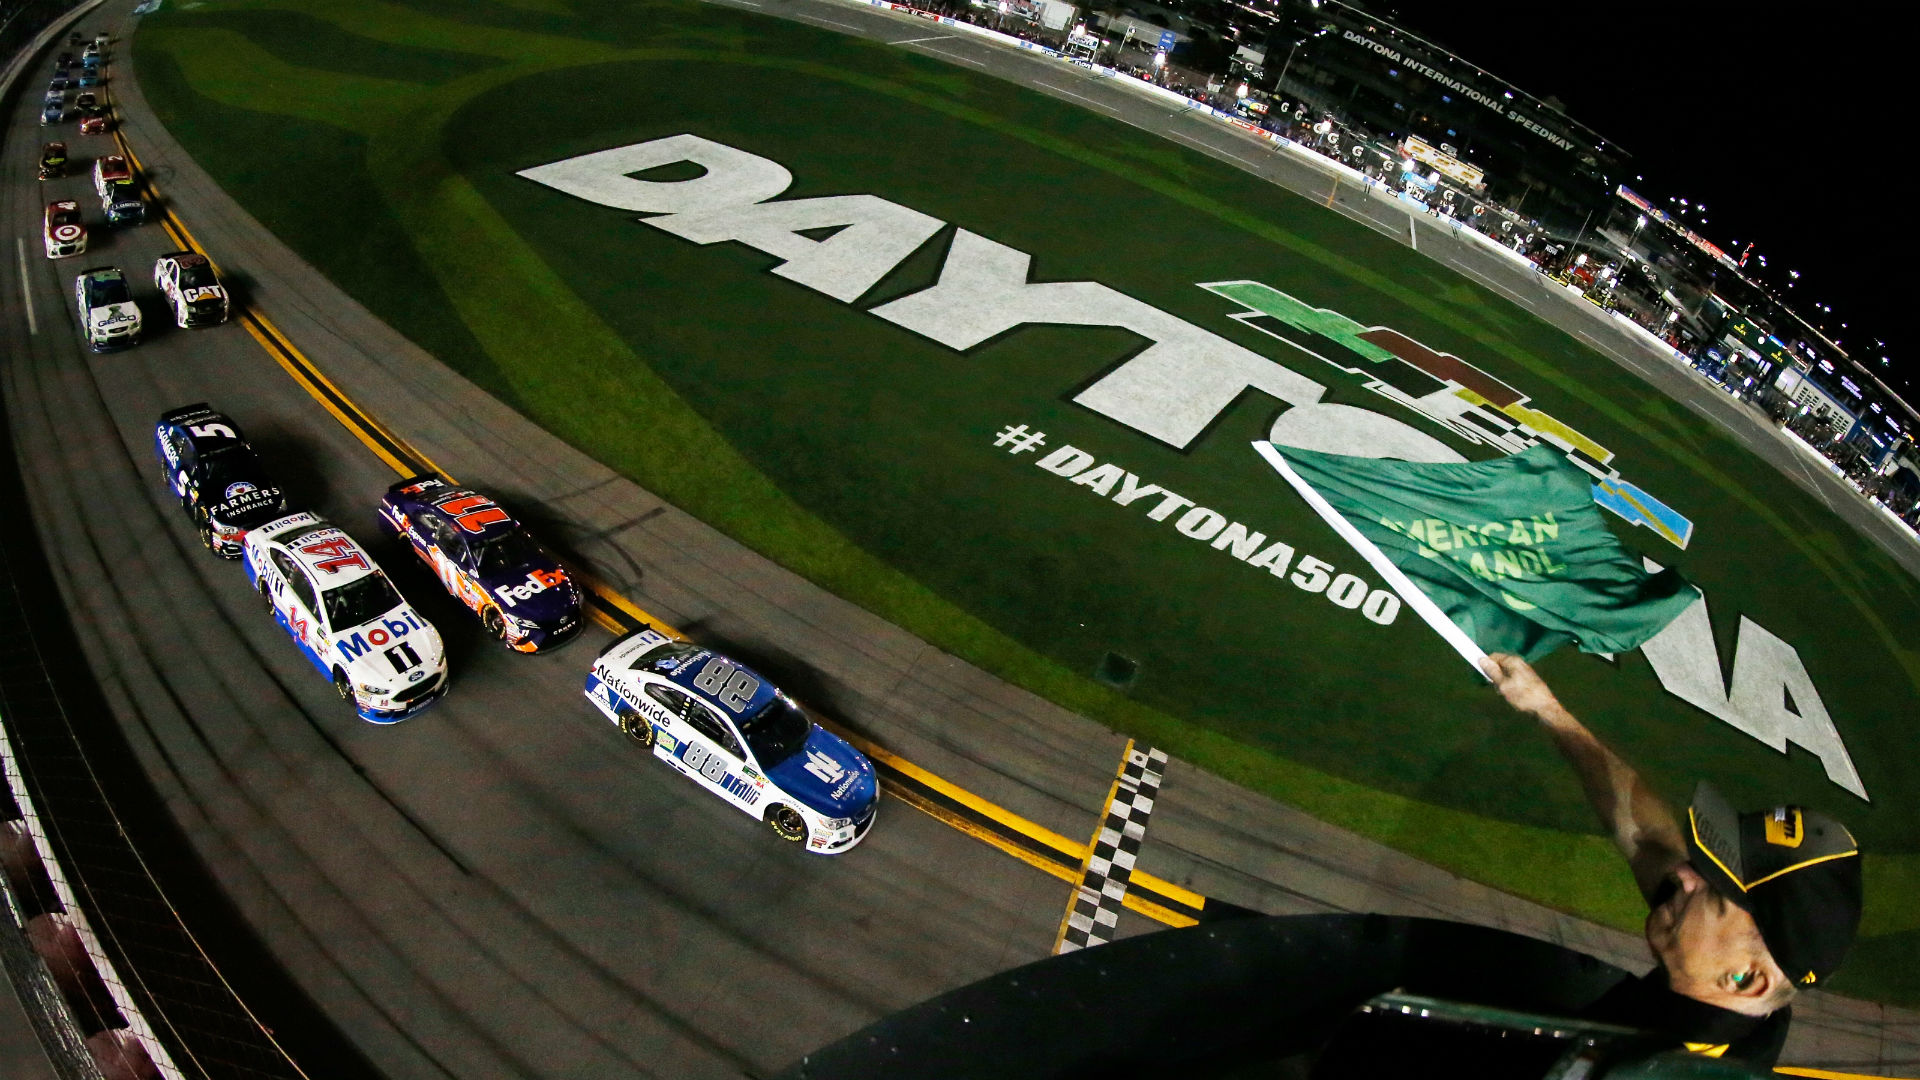 Daytona Duels 2018: Live updates from qualifying races for Daytona 500